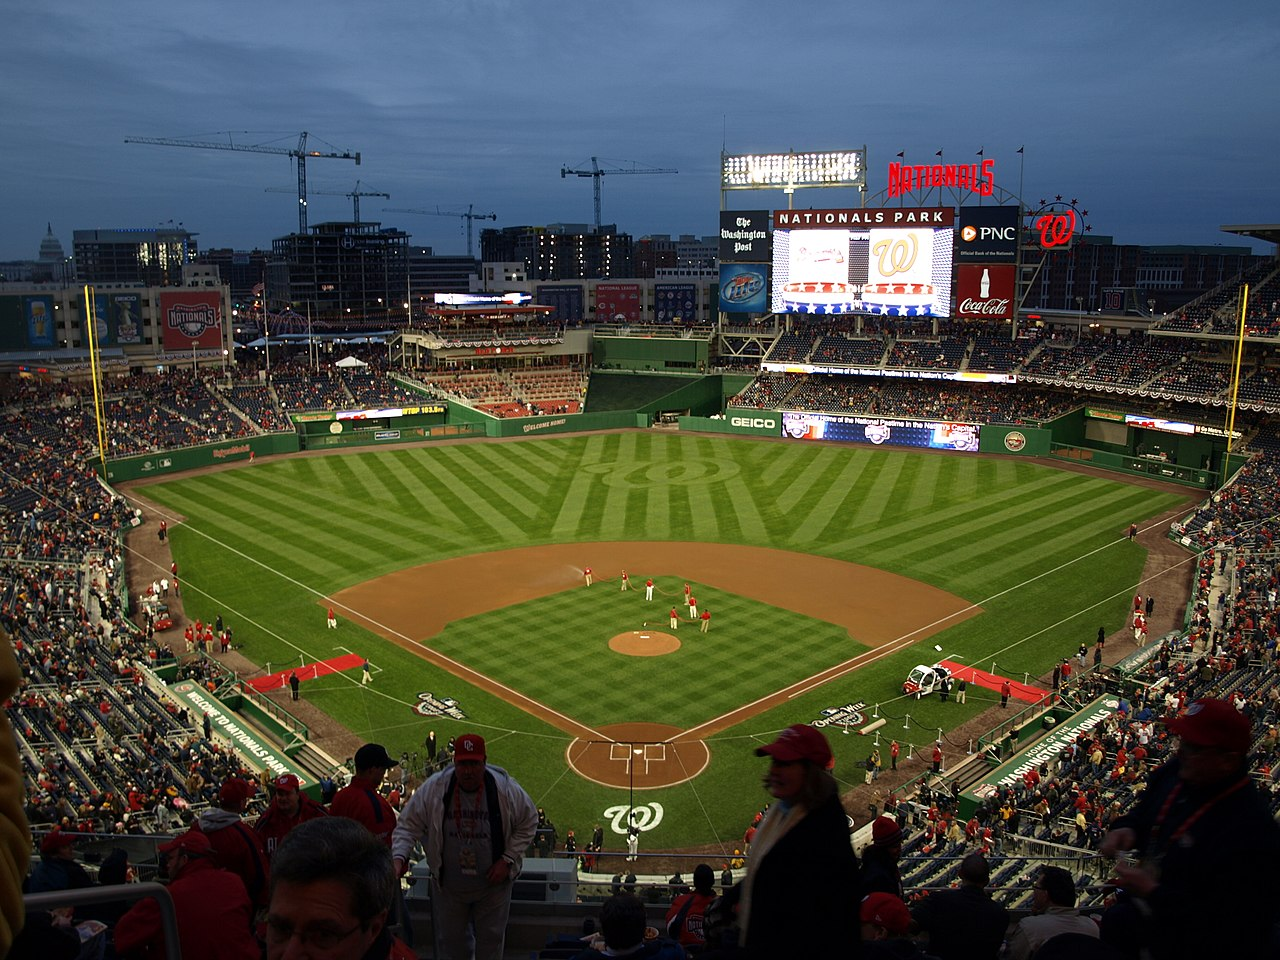 1280px-Opening_of_Nationals_Park_-_039_%282377924697%29.jpg